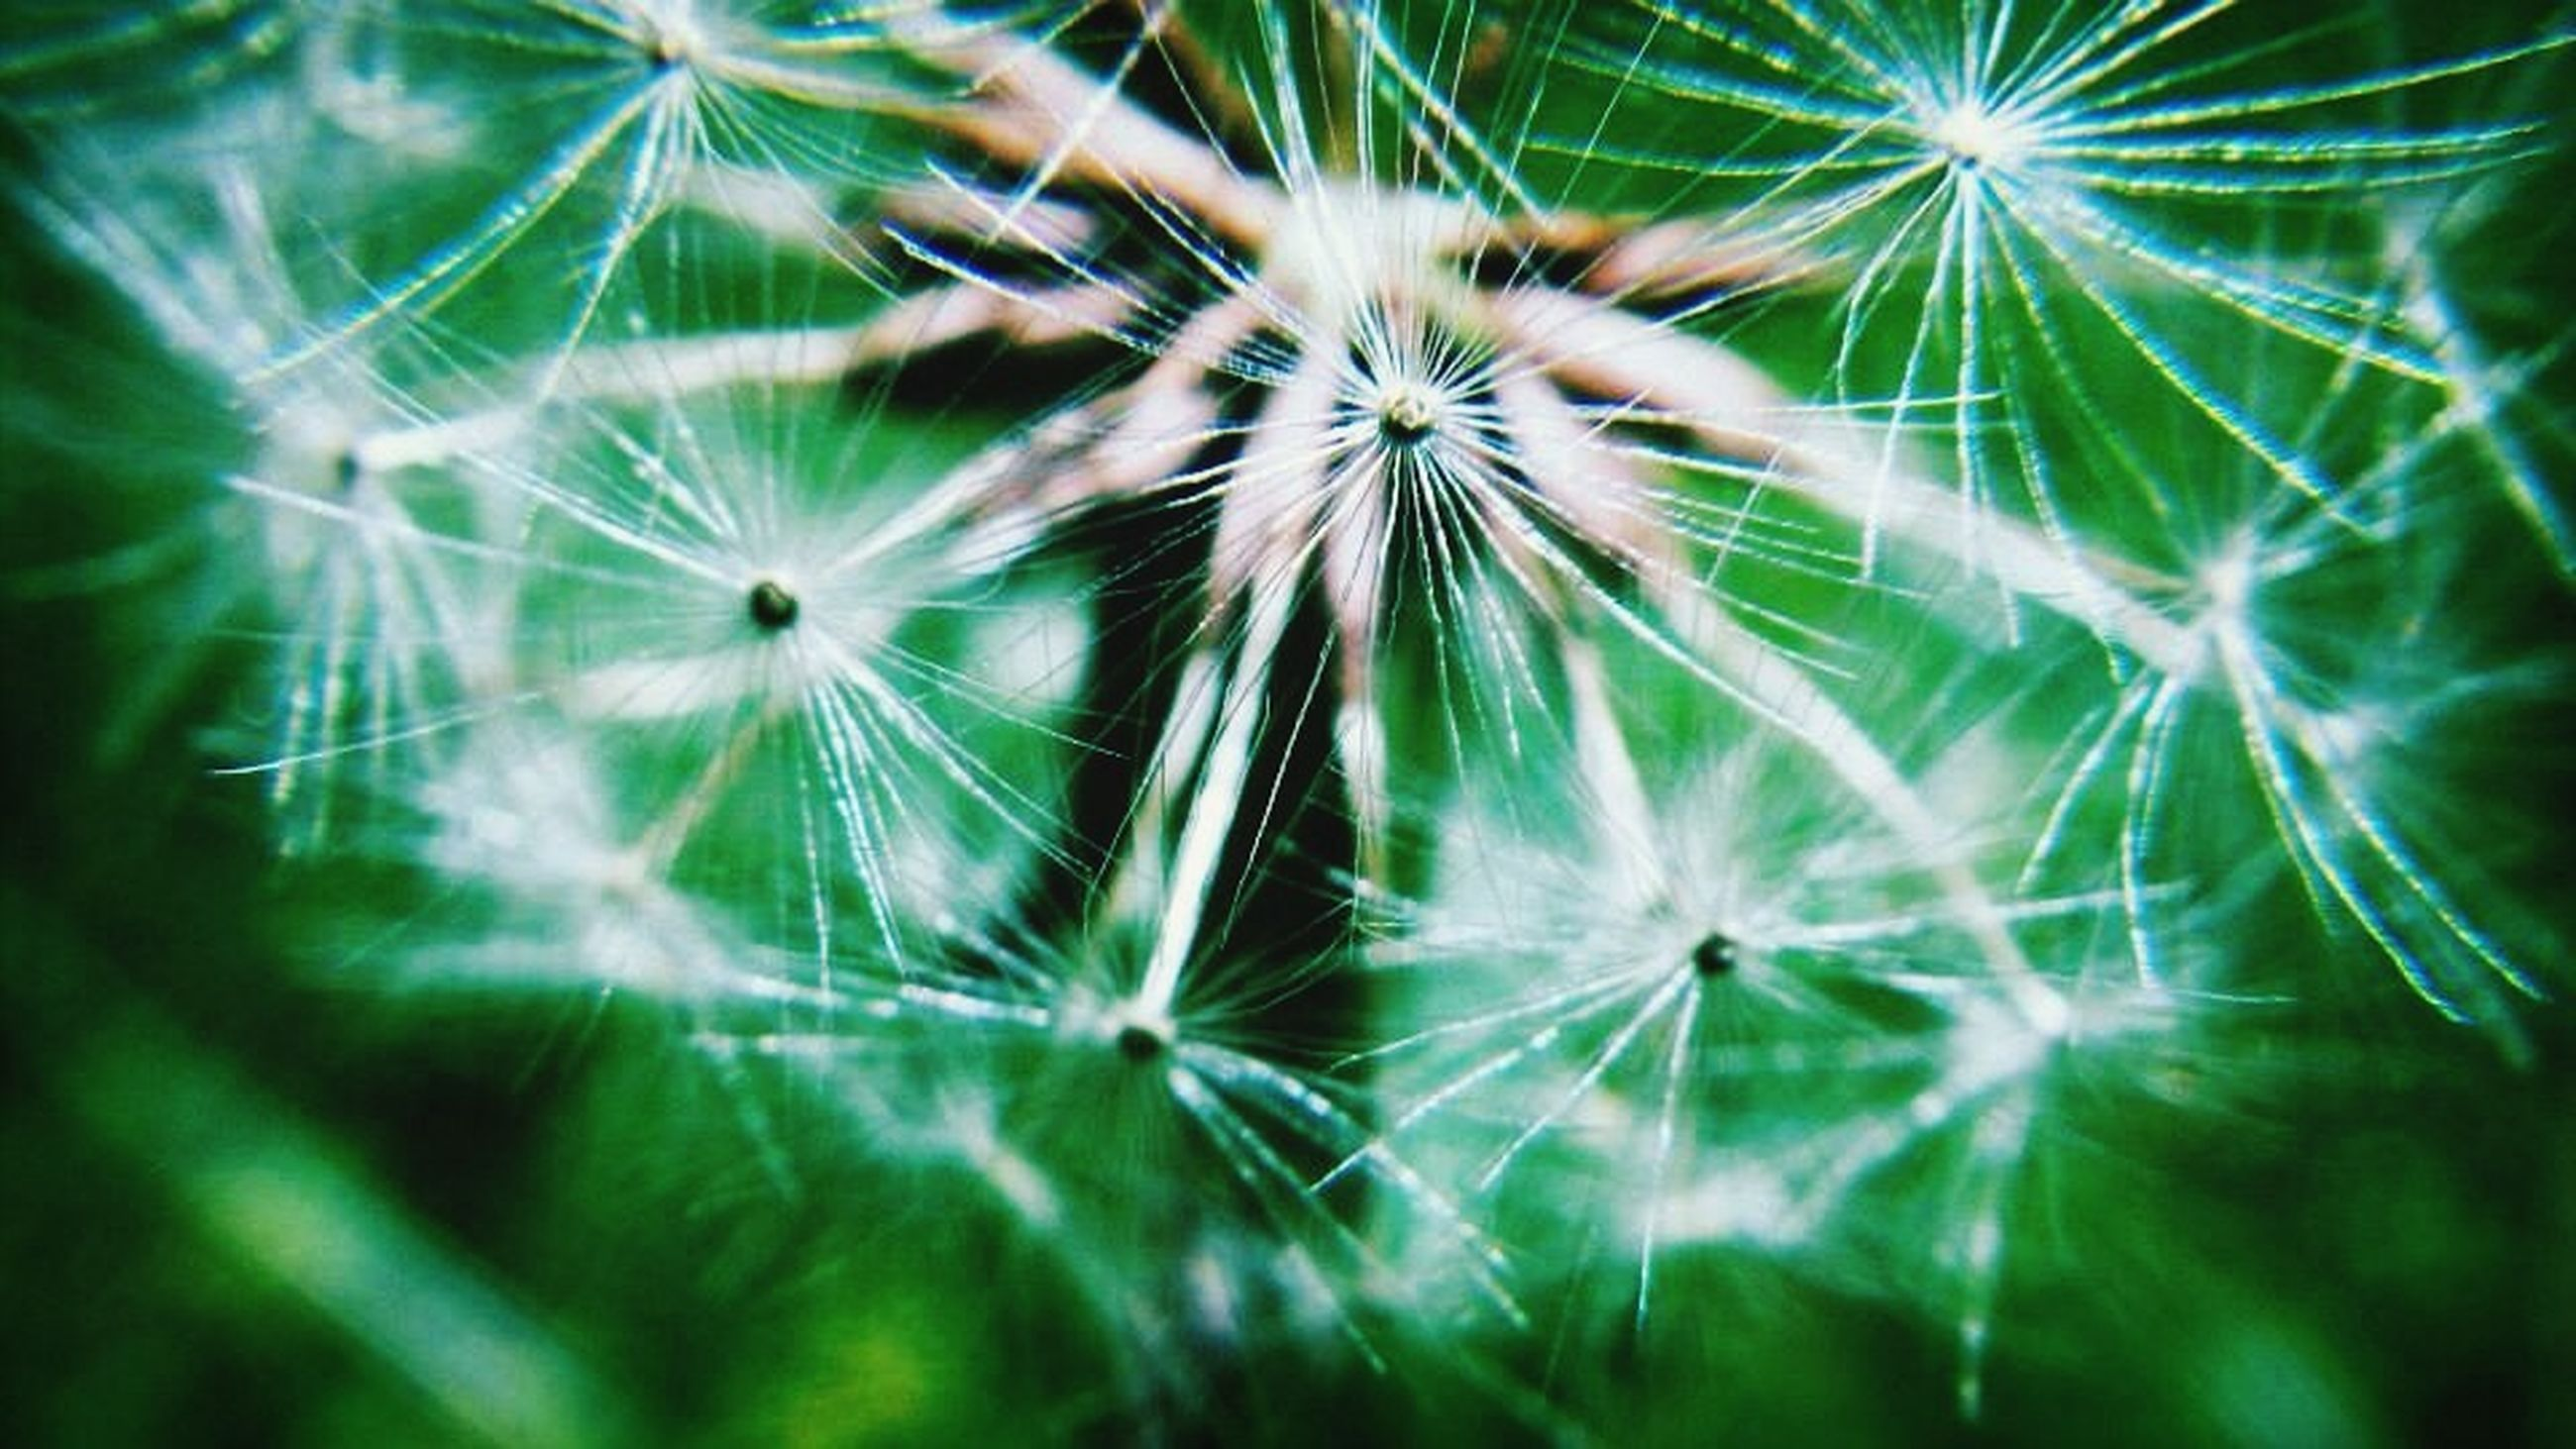 growth, dandelion, freshness, fragility, close-up, nature, beauty in nature, plant, flower, focus on foreground, dandelion seed, backgrounds, softness, full frame, day, green color, uncultivated, outdoors, natural pattern, selective focus